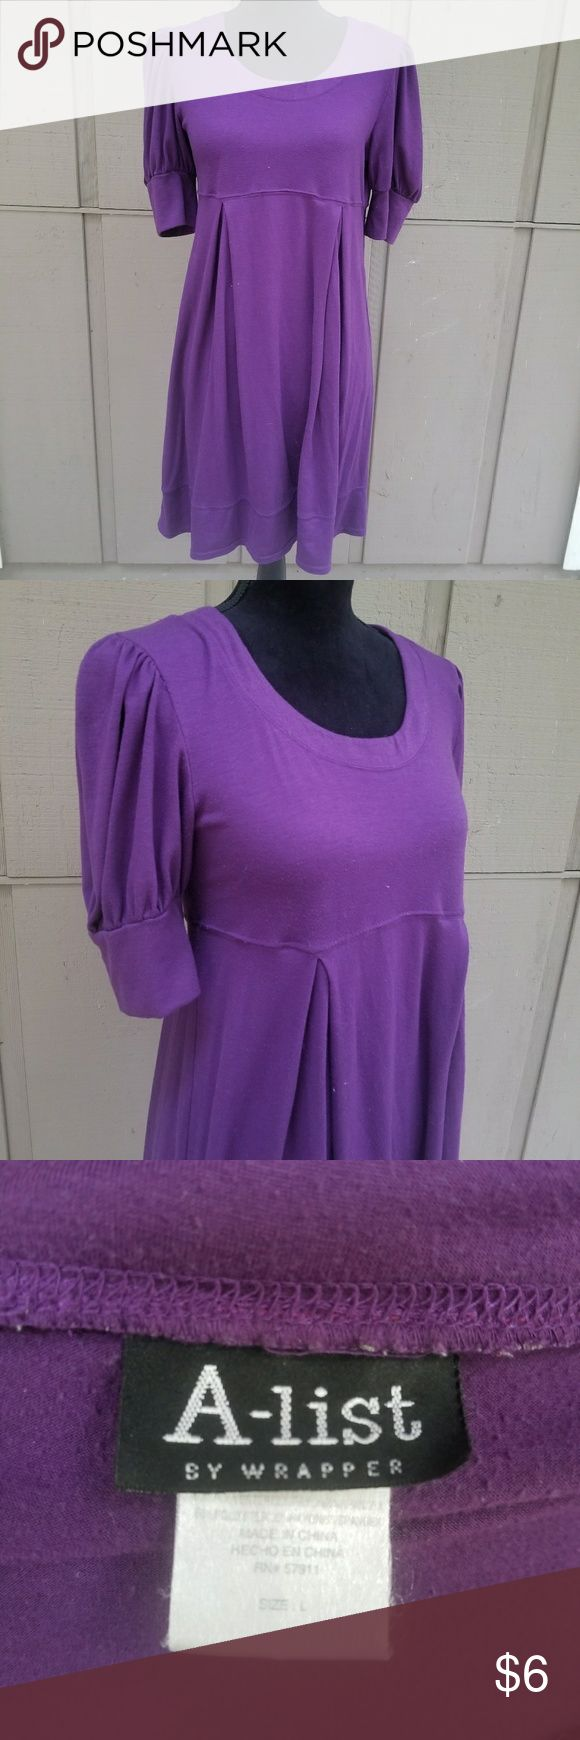 Size Large A-List Purple Short Sleeve Dress Ladies size large A-List purple short sleeved dress. Some small areas of piling, but still a great dress & so cute with leggings! Measurements available upon request, modeled on a size small mannequin. A-list Dresses Mini